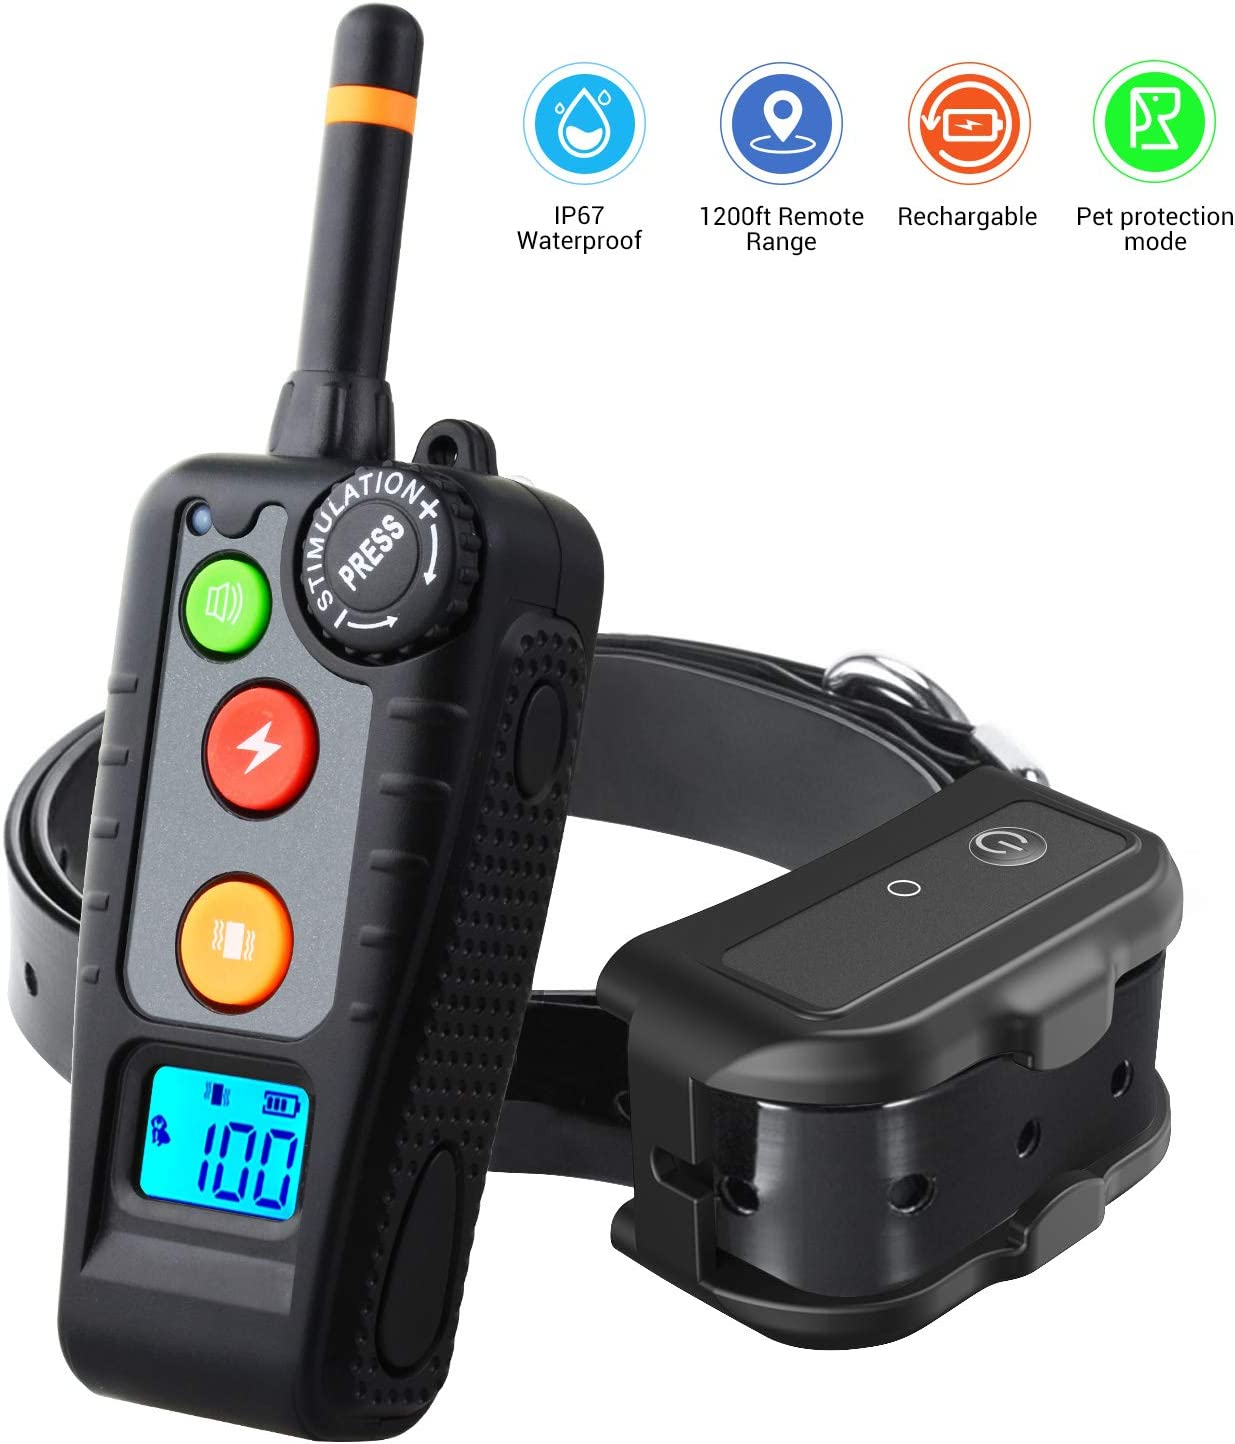 HISEASUN Dog Training Collar for 1 Dog Waterproof Rechargeable New 2019 Reflective Collar with Tracking Light,Beep,Vibration and Shock